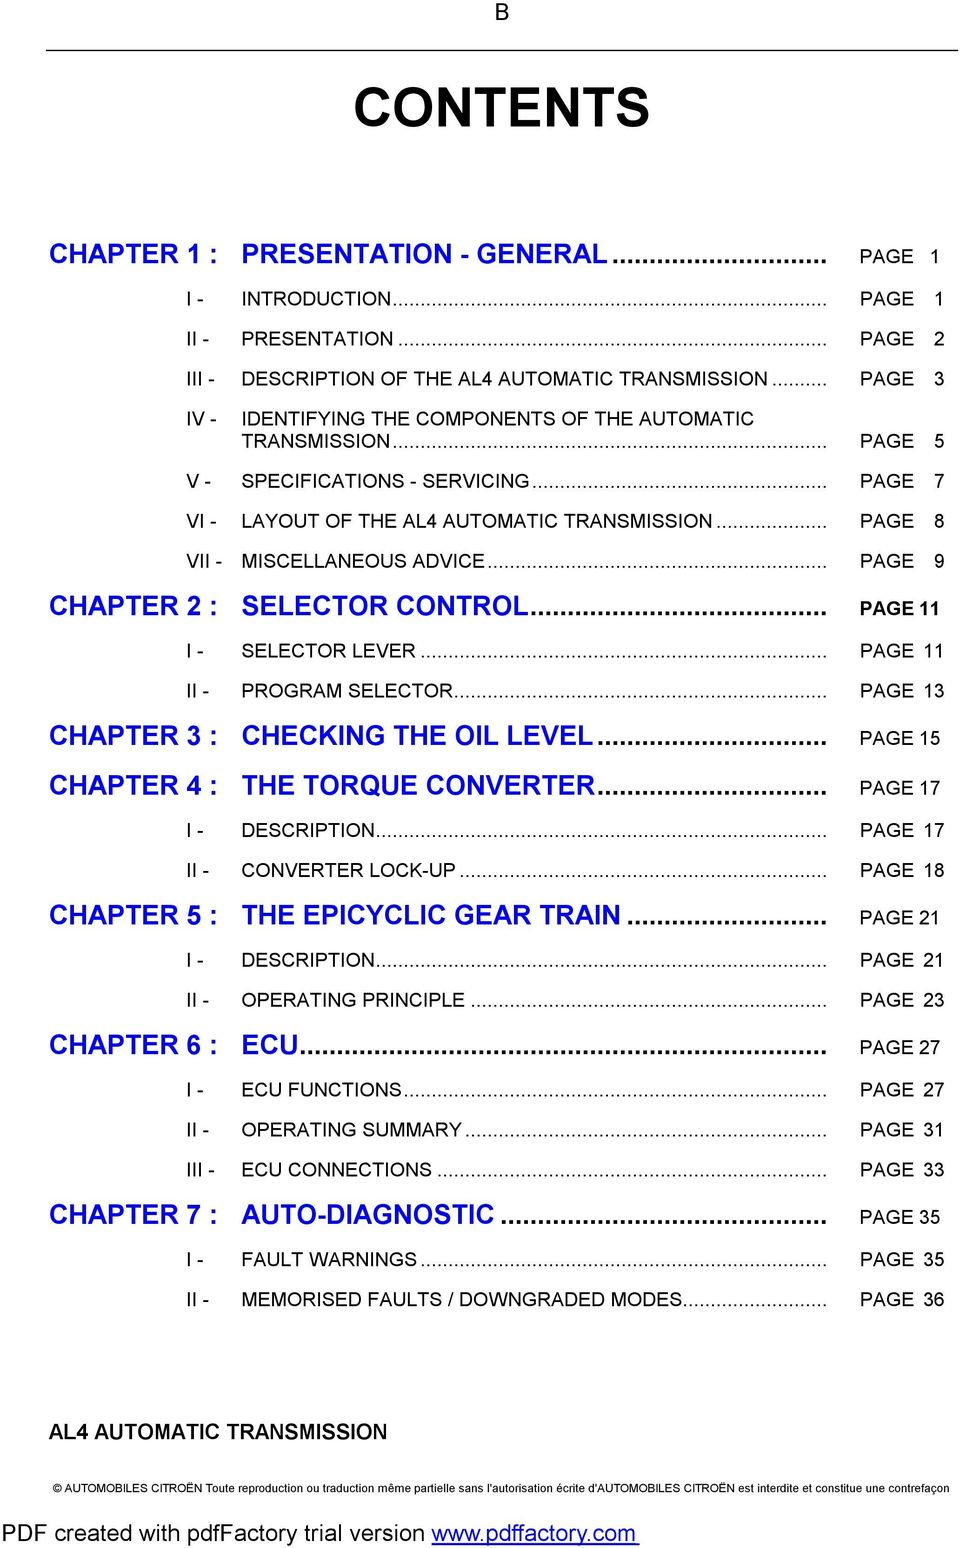 .. PAGE 9 CHAPTER 2 : SELECTOR CONTROL... PAGE 11 I - SELECTOR LEVER... PAGE 11 II - PROGRAM SELECTOR... PAGE 13 CHAPTER 3 : CHECKING THE OIL LEVEL... PAGE 15 CHAPTER 4 : THE TORQUE CONVERTER.